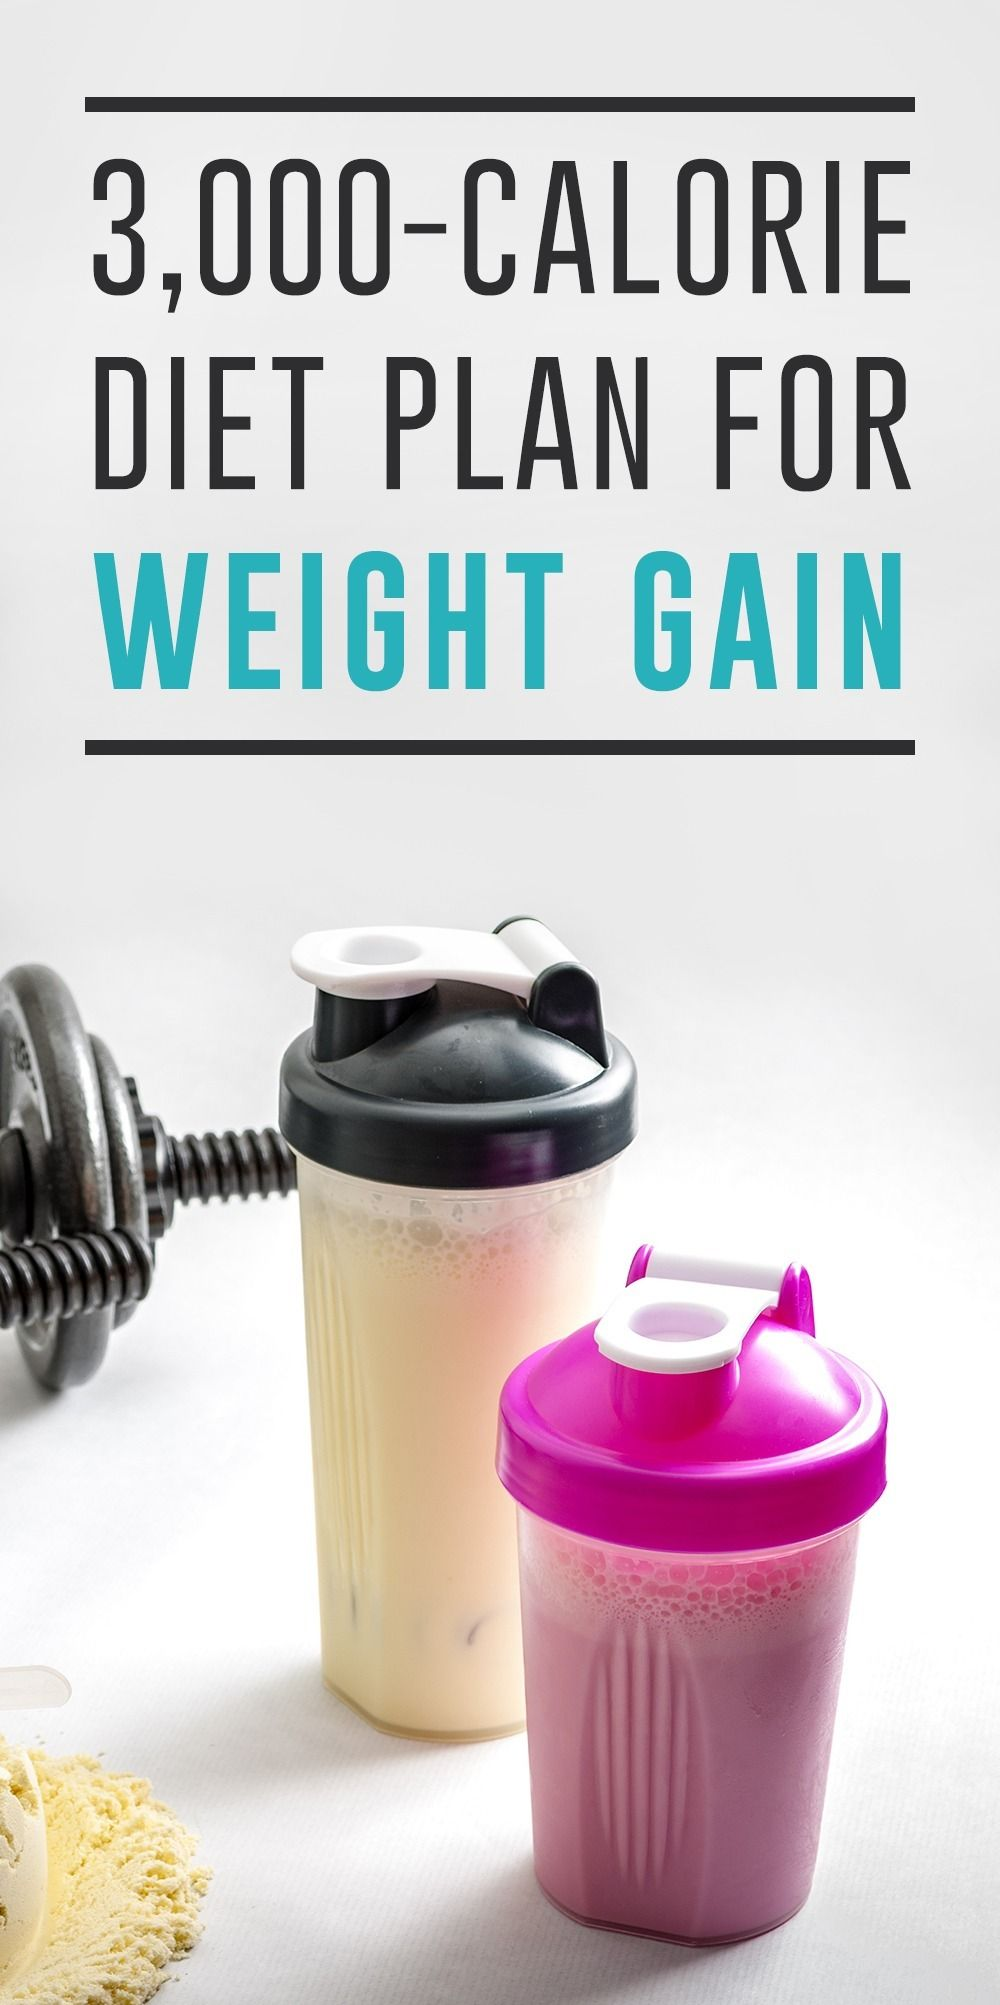 How to lose weight by changing my diet